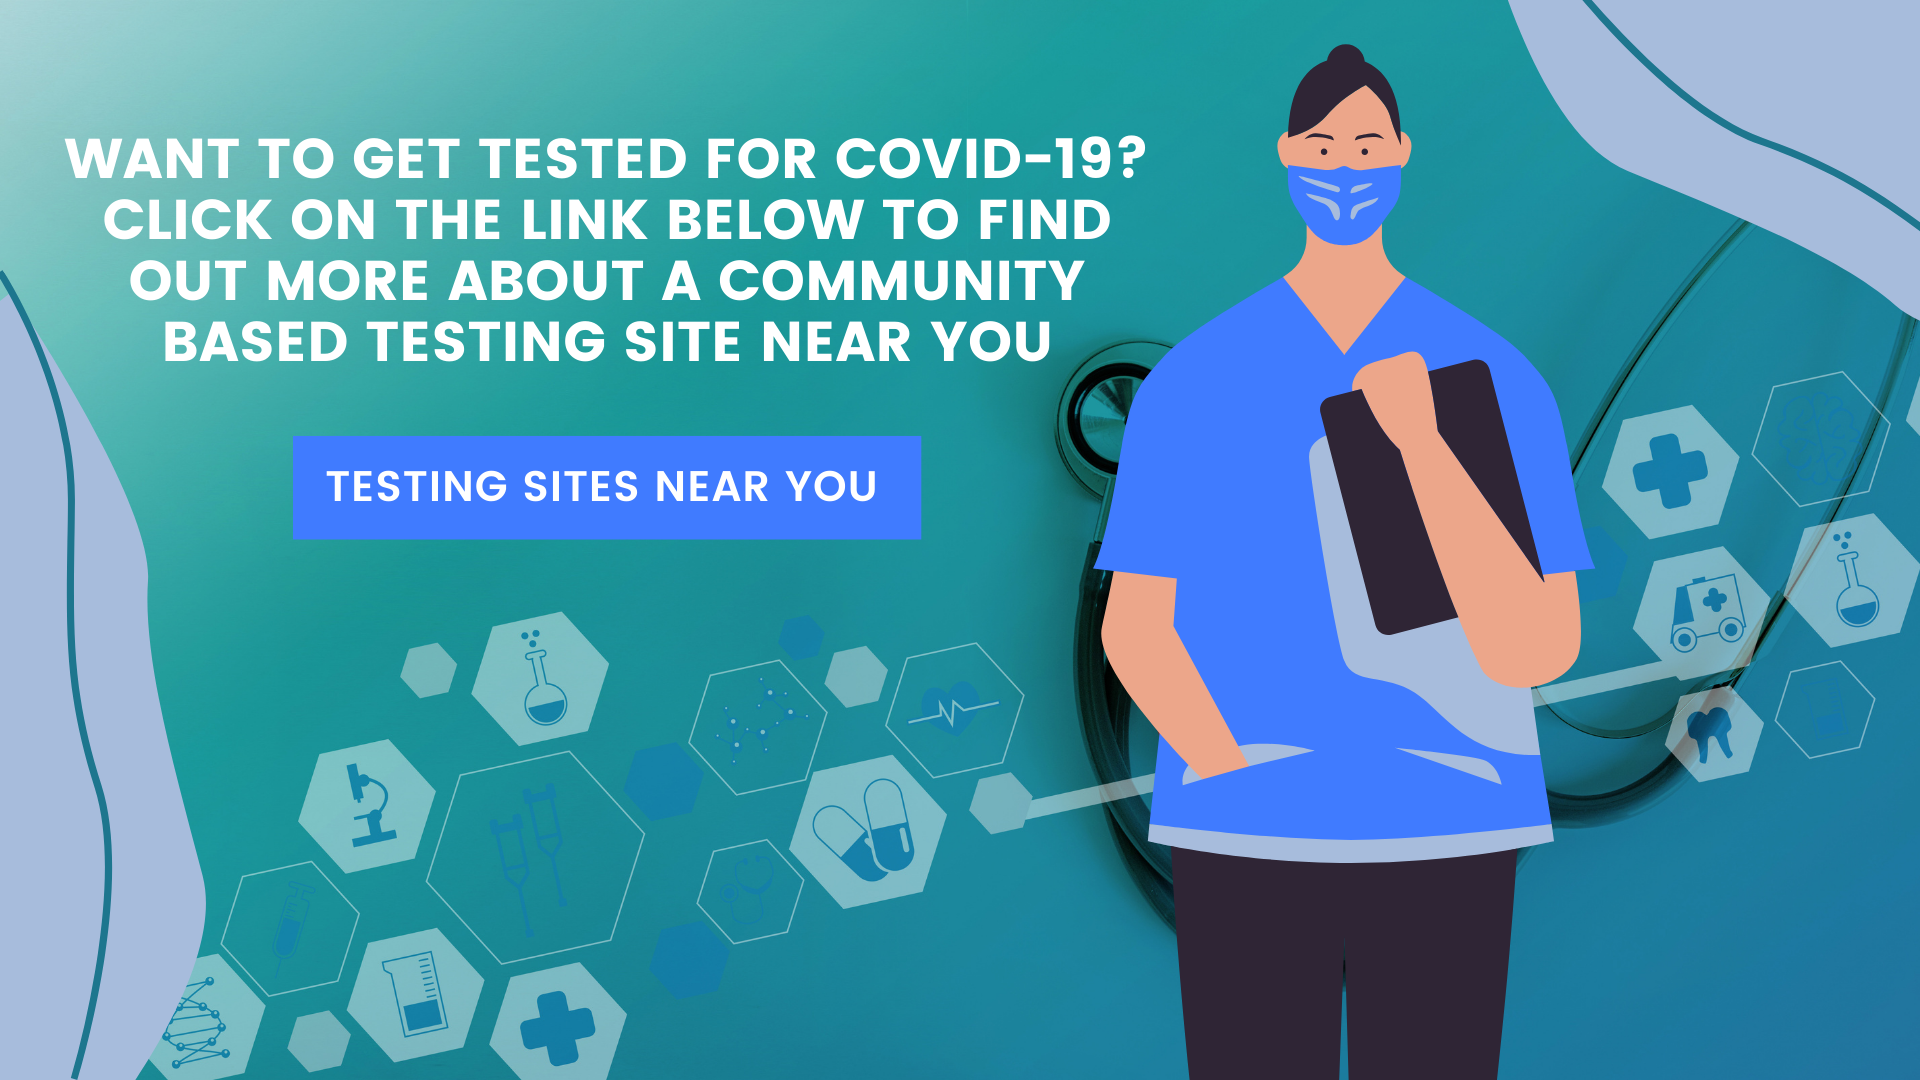 Find a COVID-19 Testing Site Near You